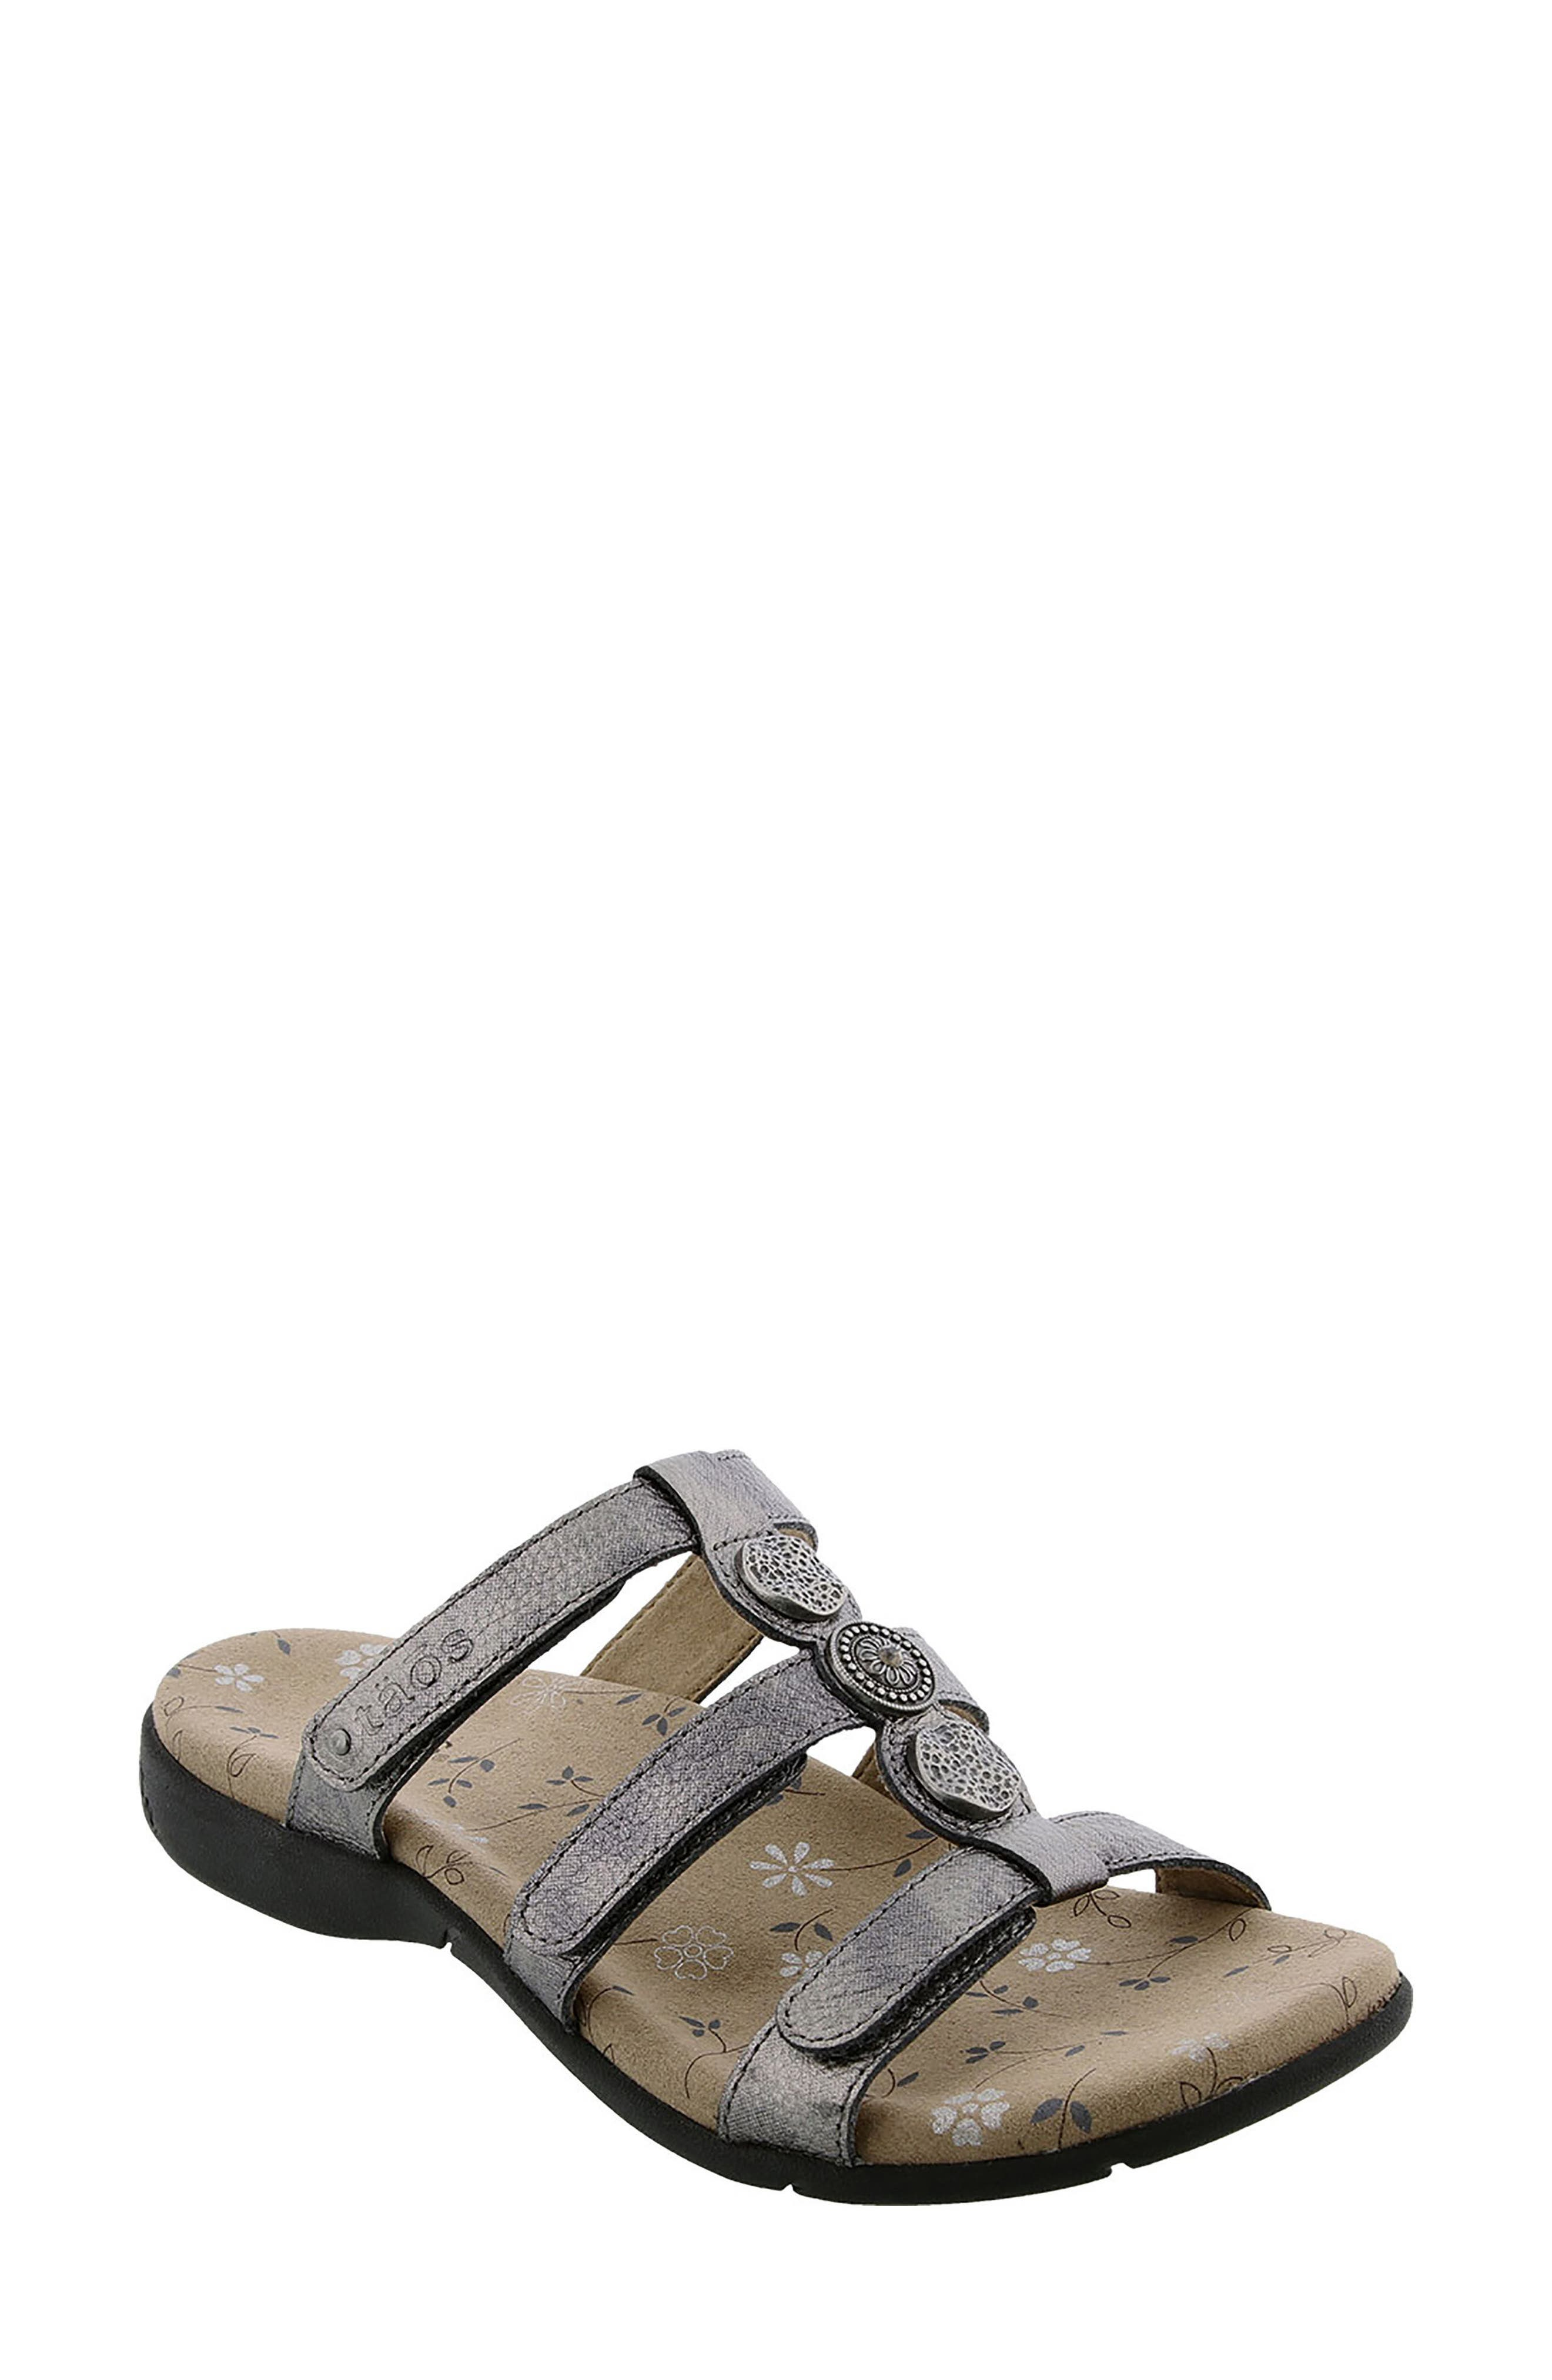 Prize 3 Sandal,                             Main thumbnail 1, color,                             Pewter Leather